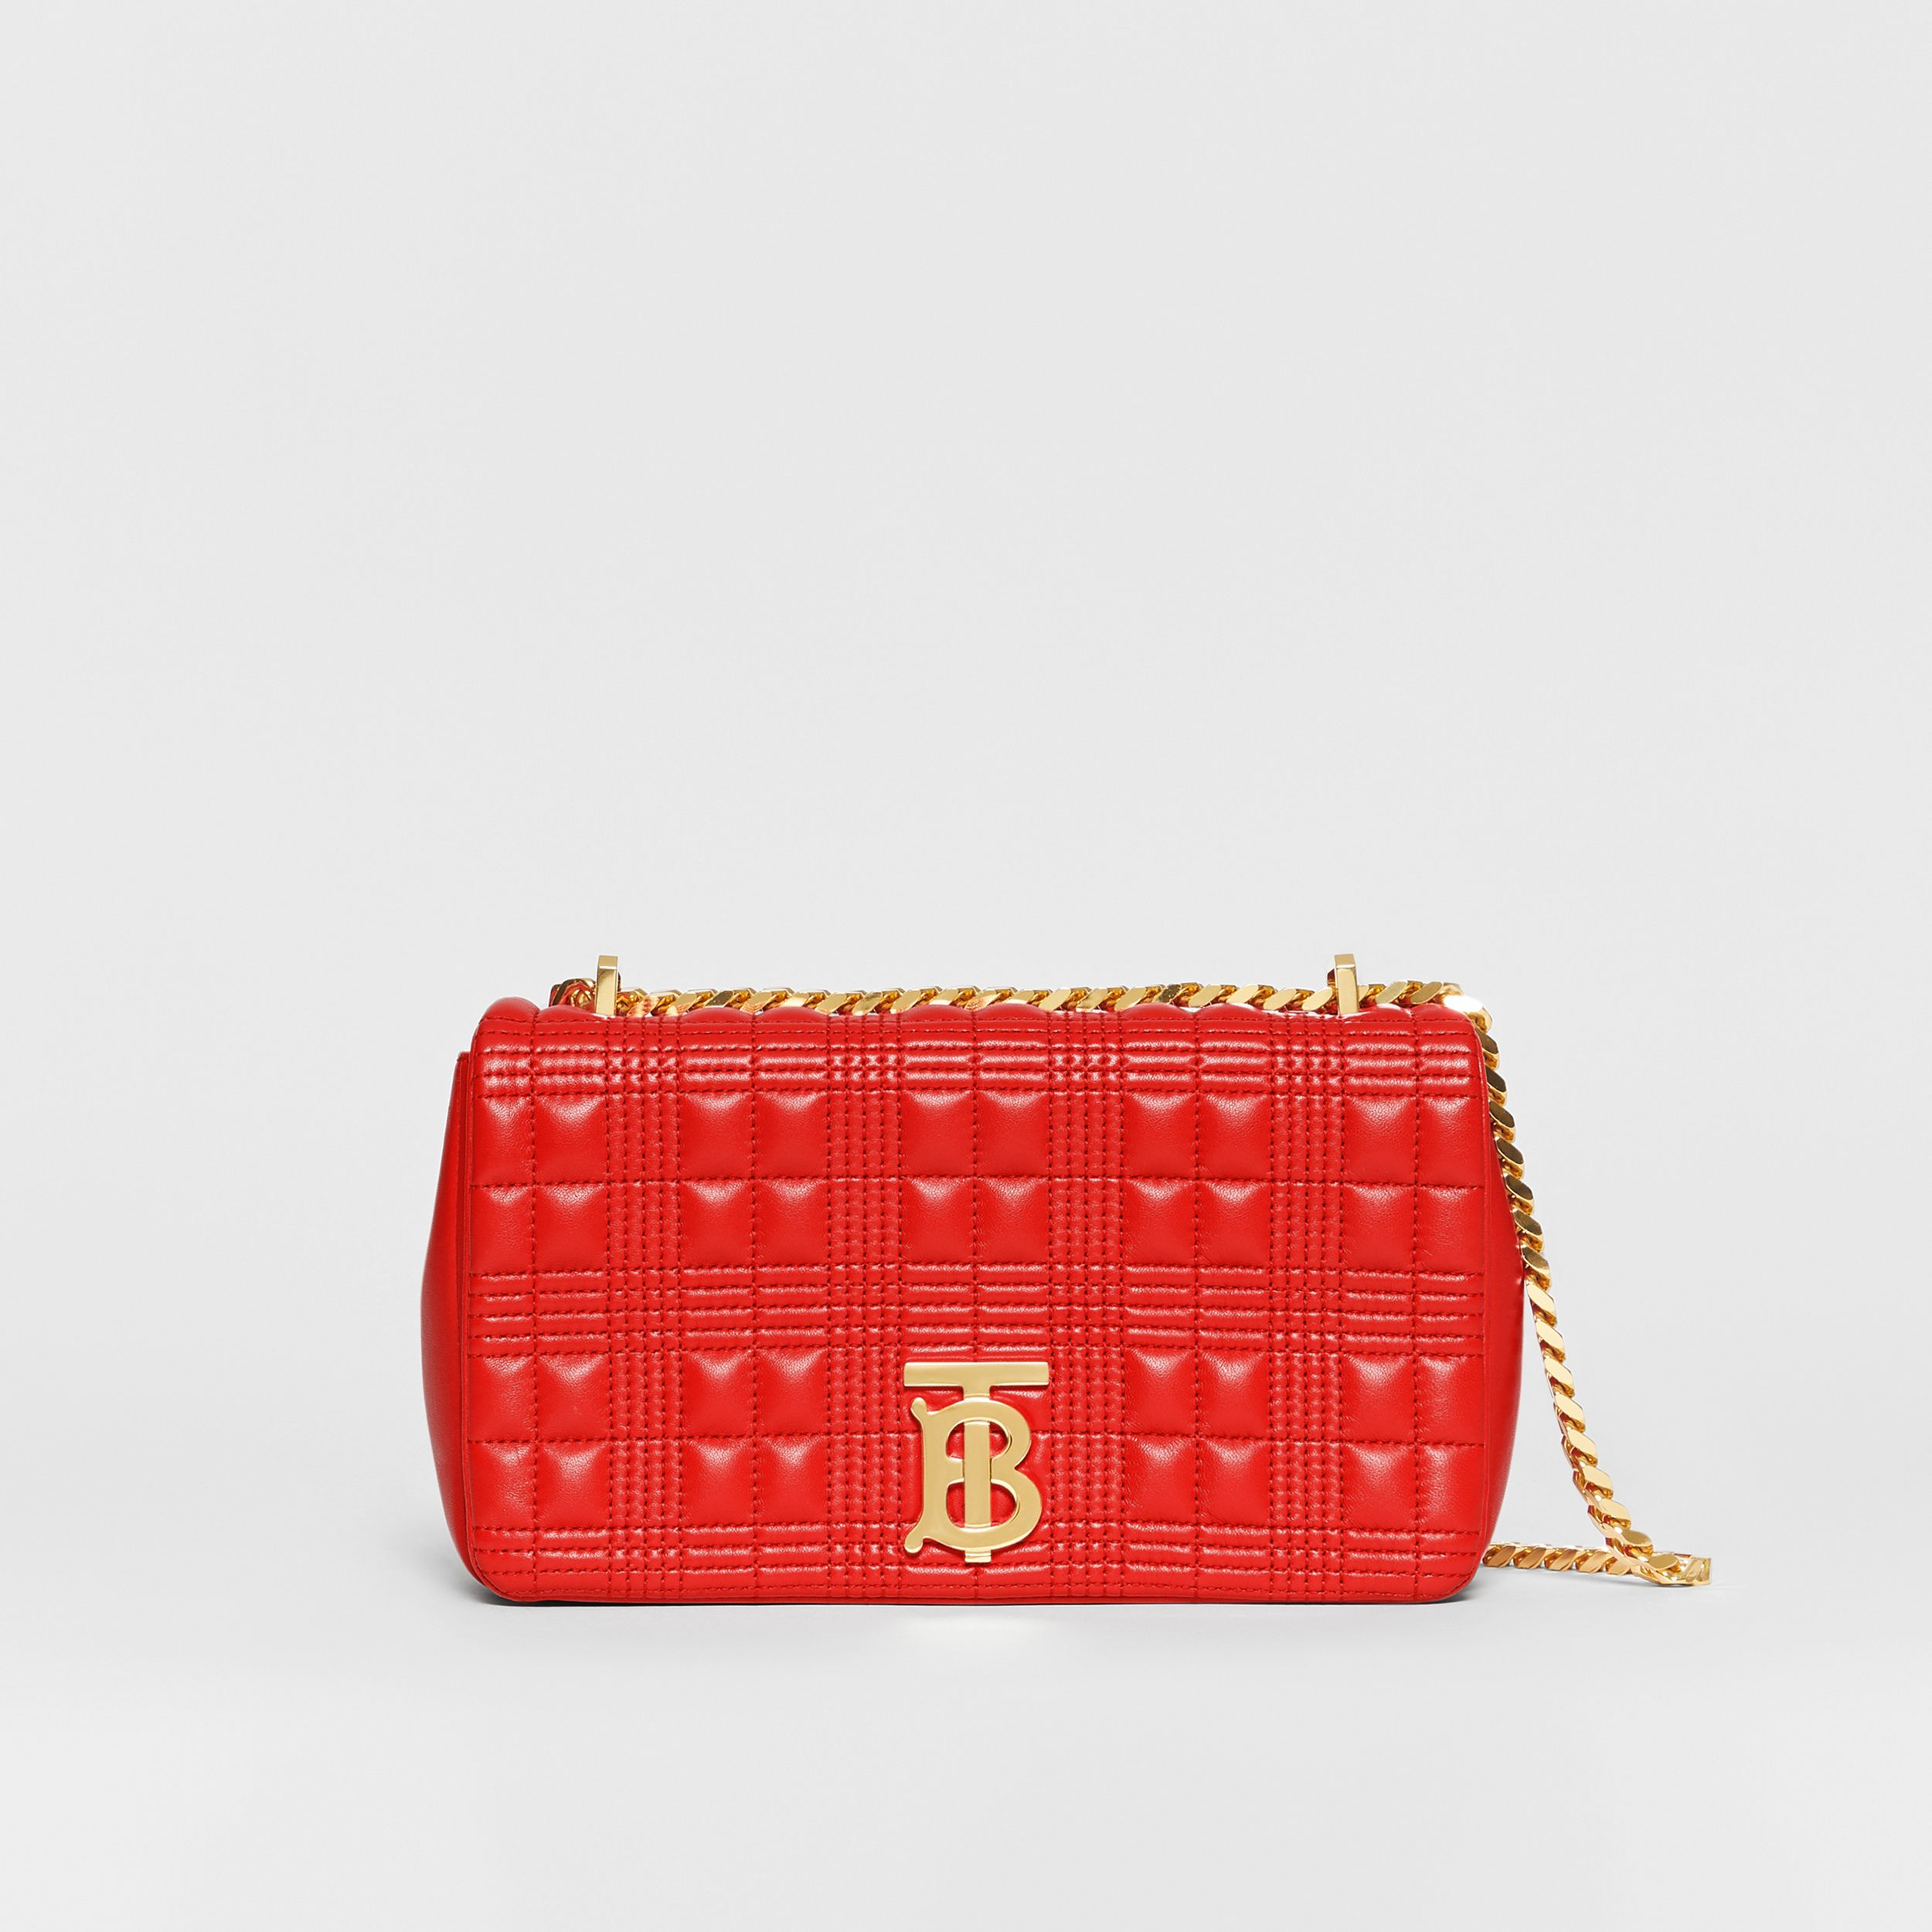 Small Quilted Lambskin Lola Bag in Bright Red - Women | Burberry - 1